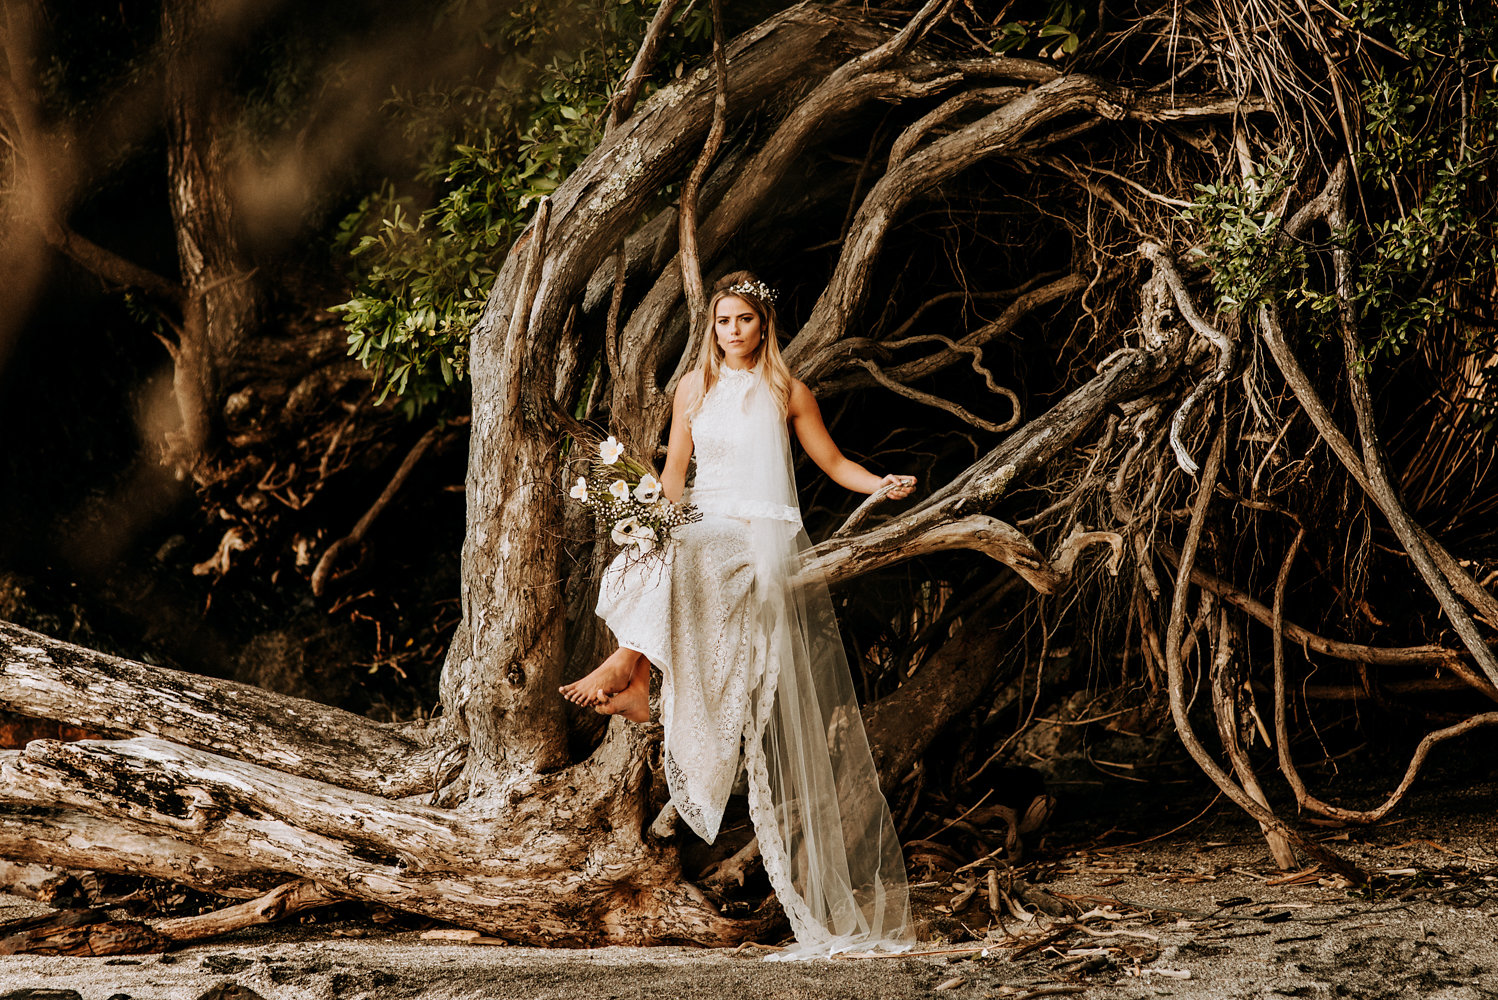 Categories: Inspiration-1960s Sophistication - Photography by Andrea Stephens